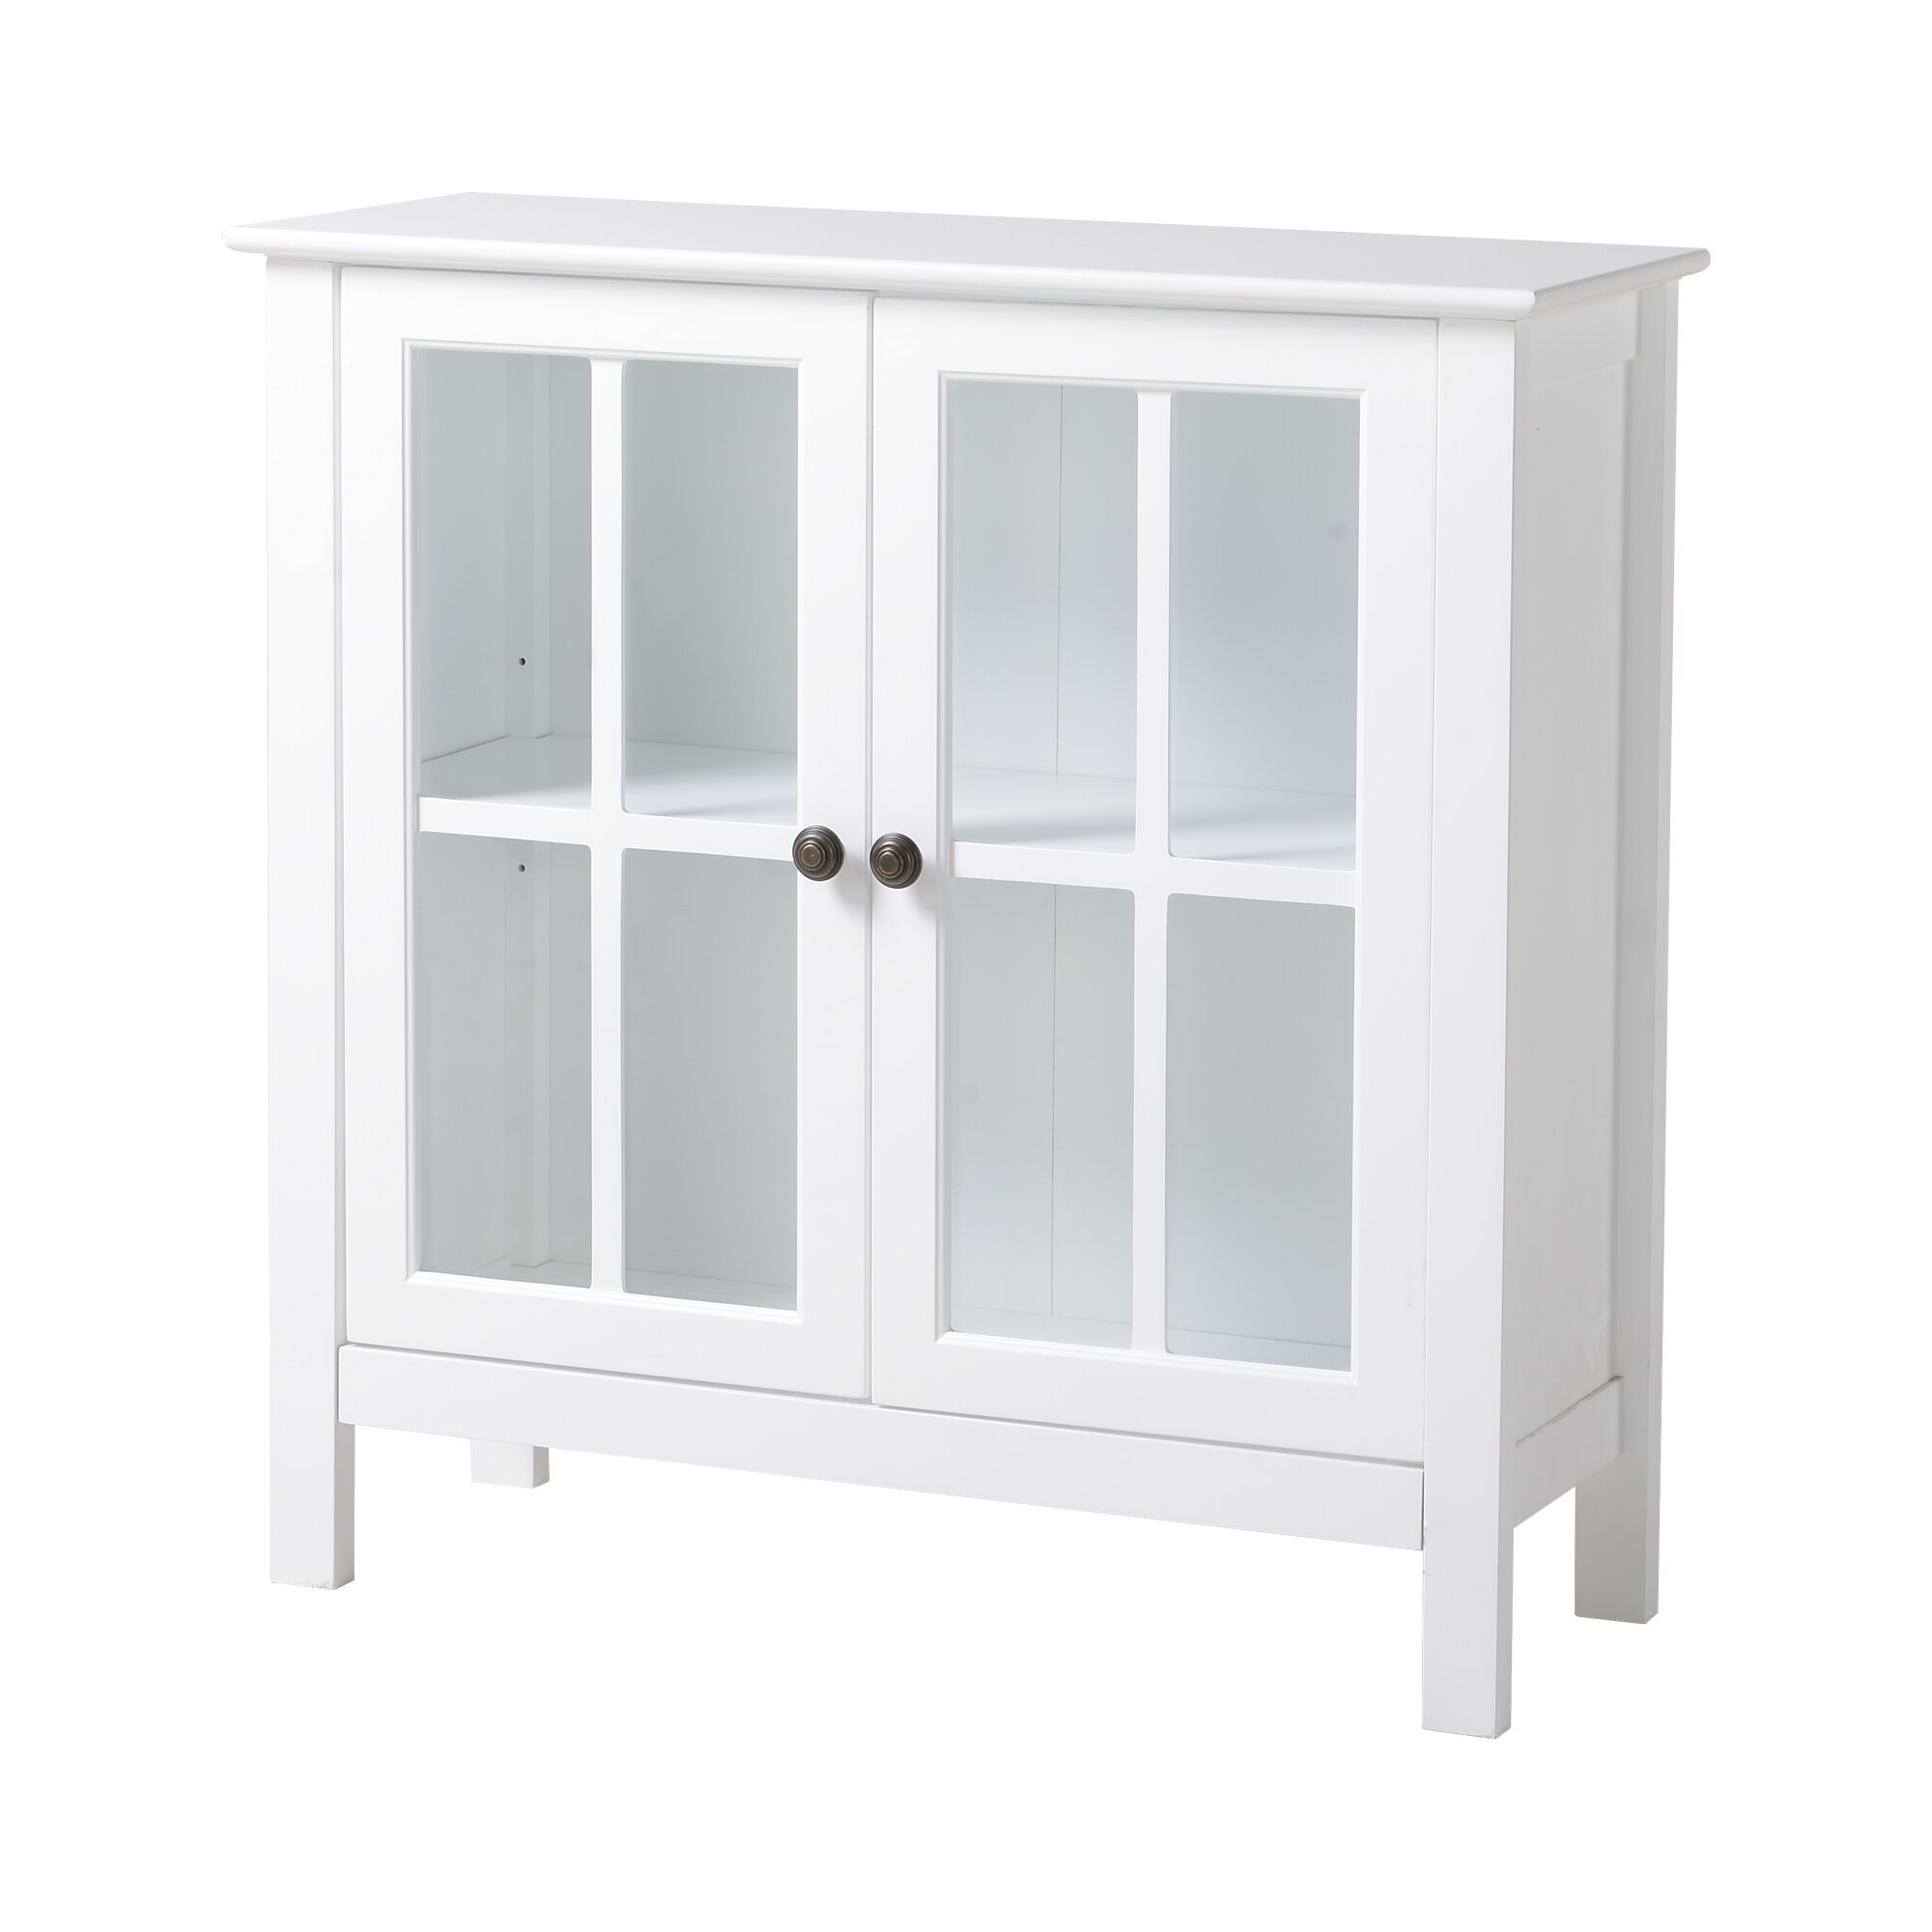 Accent cabinet with glass doors - Glass 2 Door Accent Cabinet